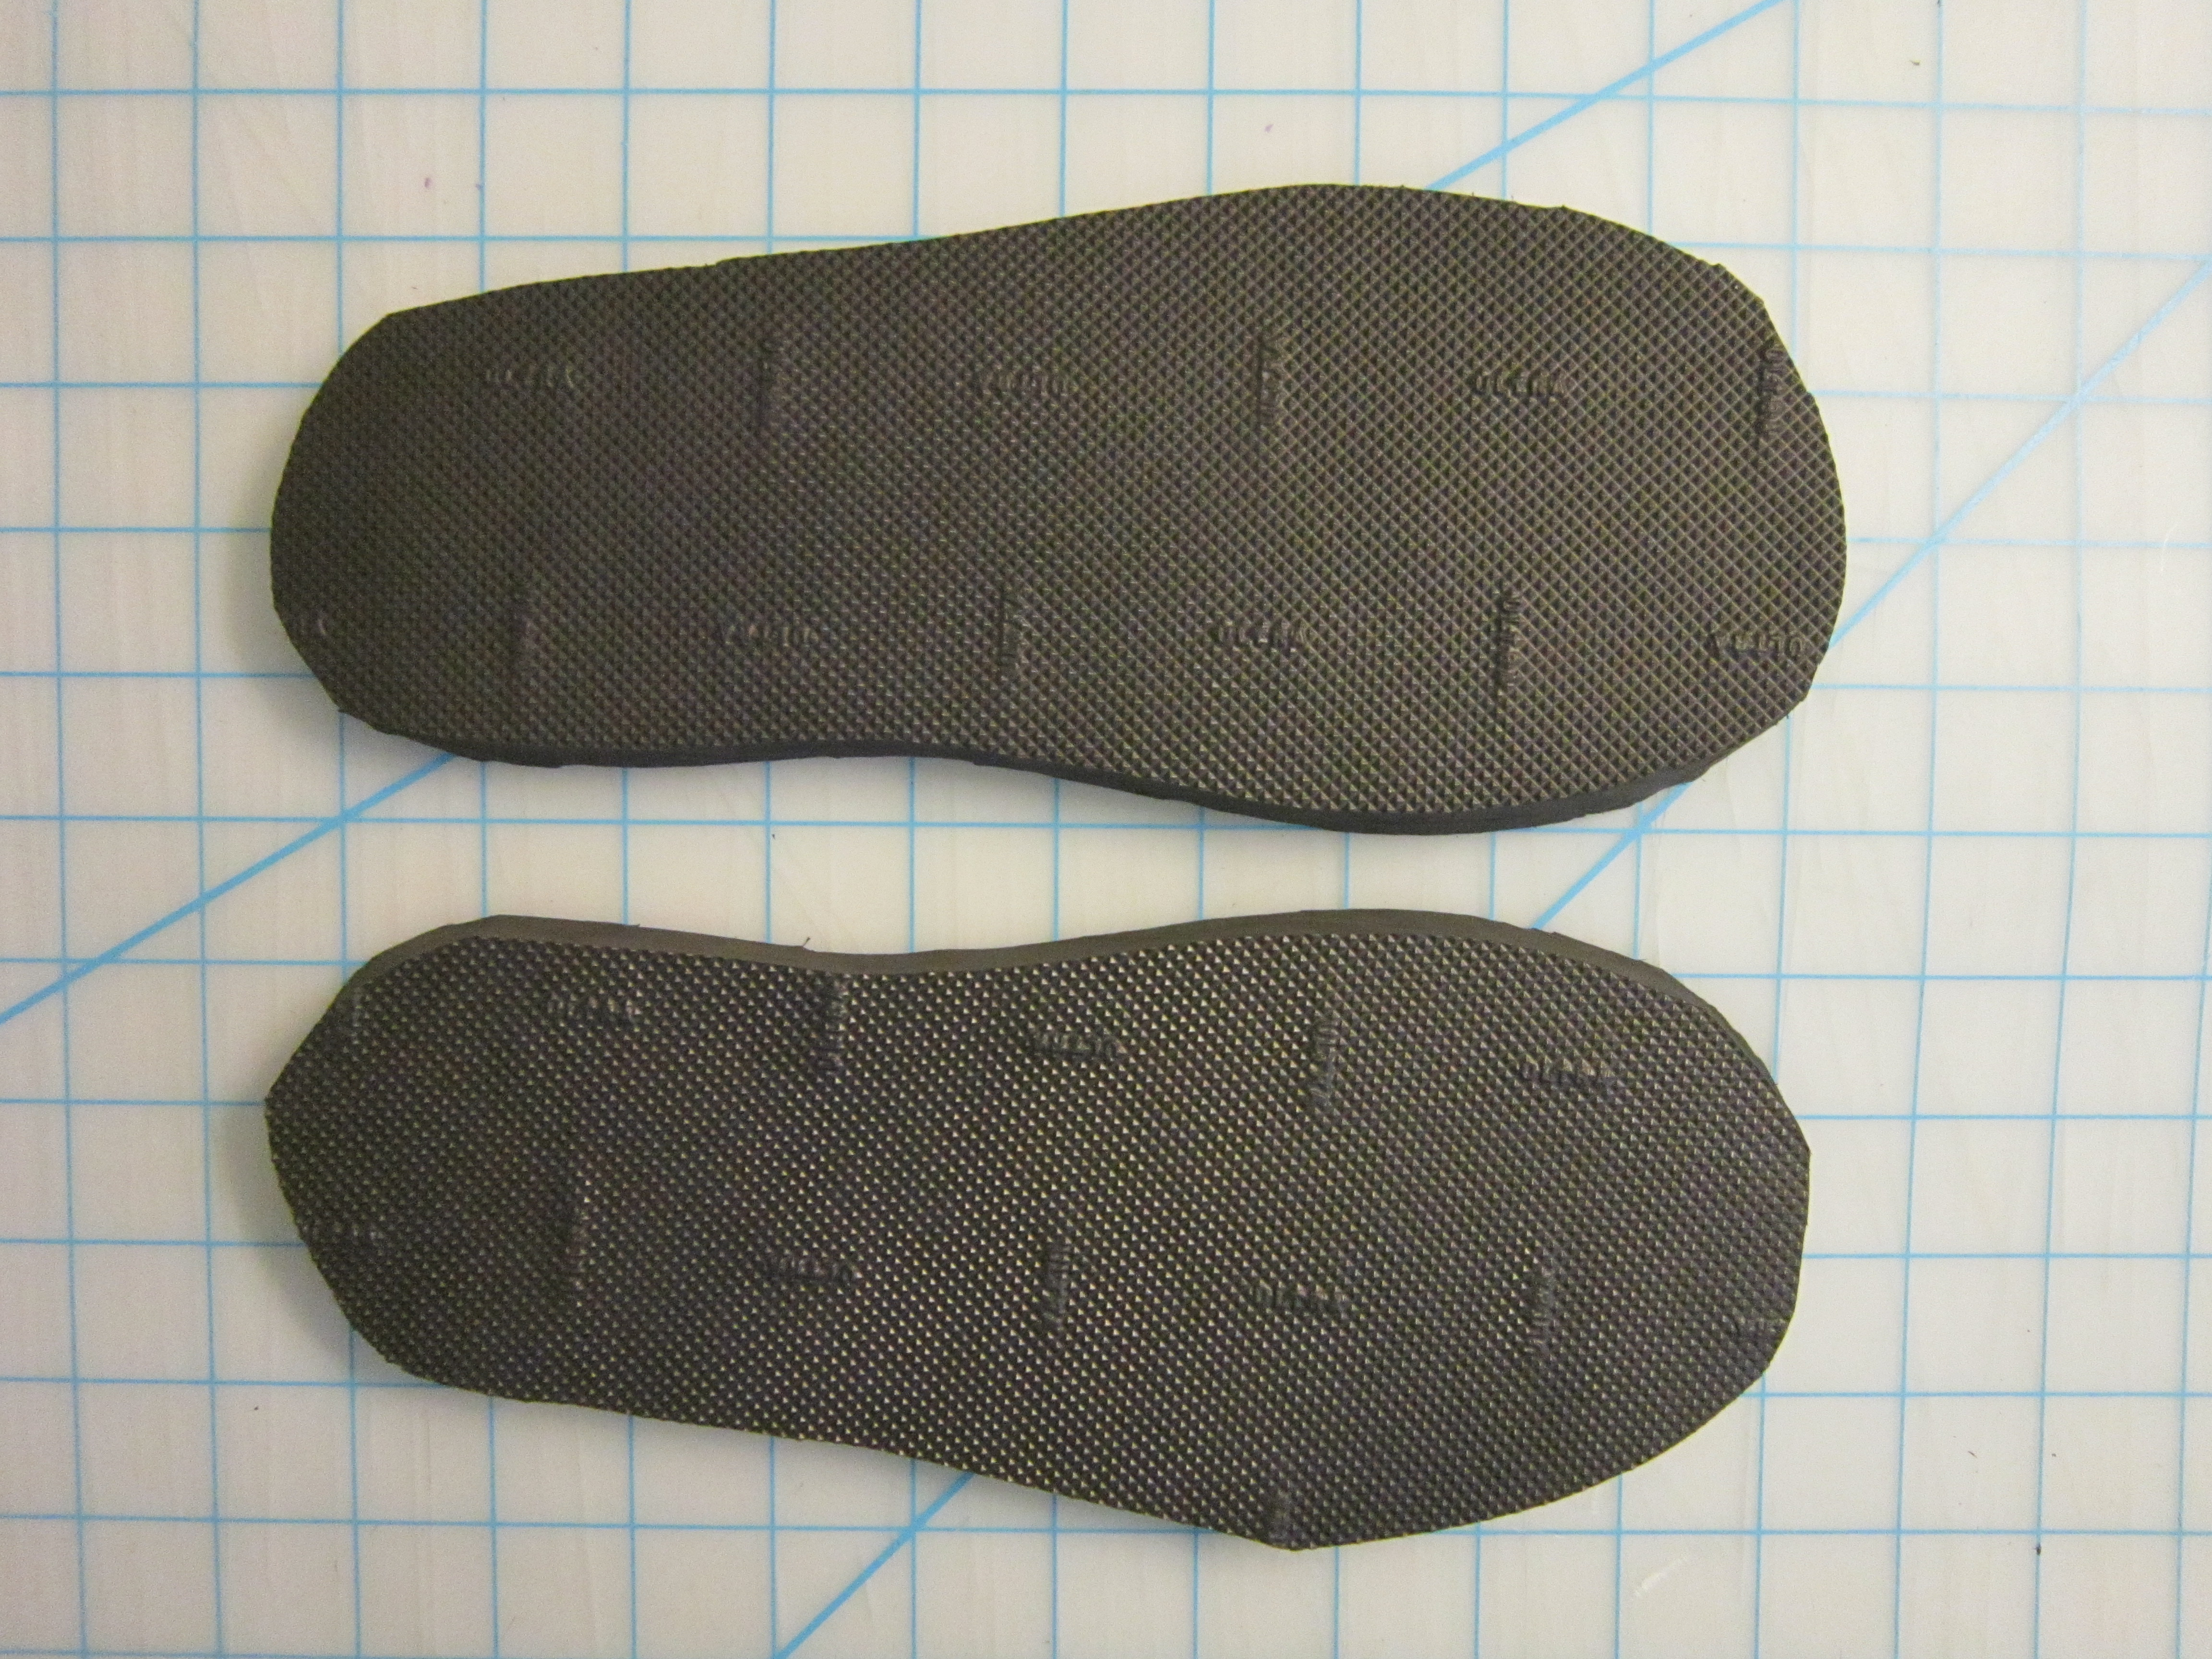 Picture of Cutting the Rubber Soles